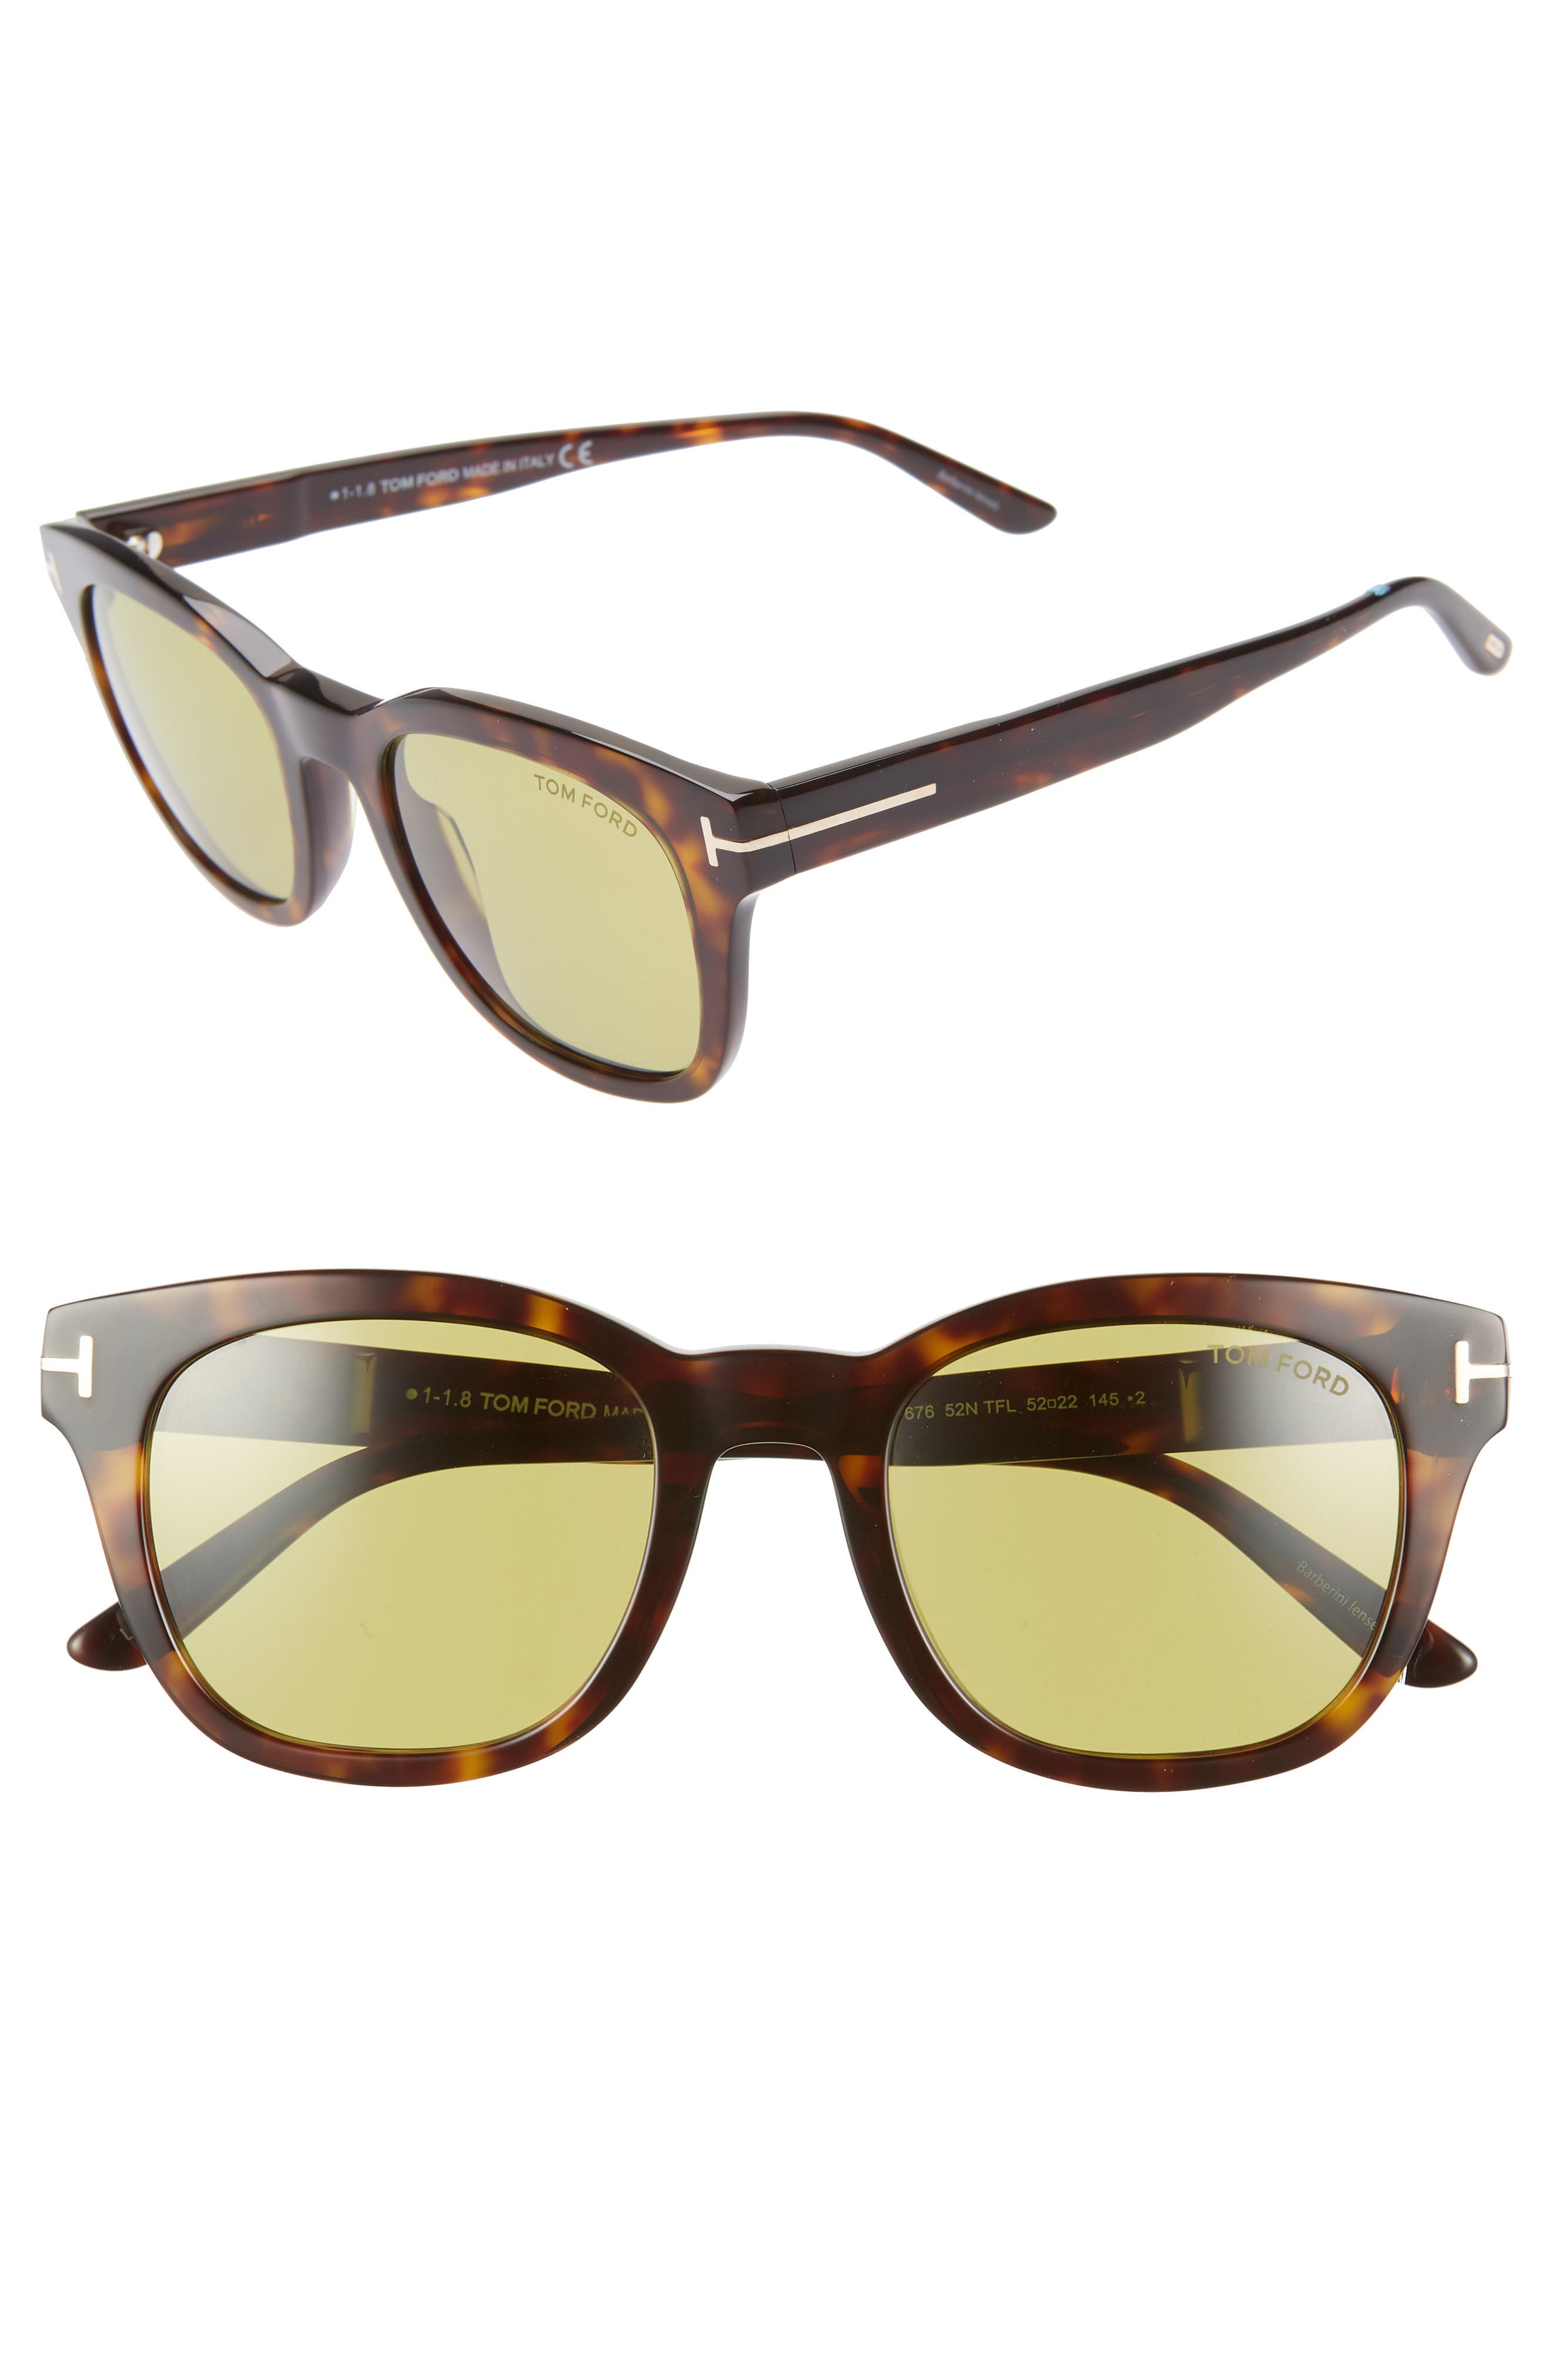 Tom Ford Eugenio 52Mm Sunglasses - Dark Havana/ Green